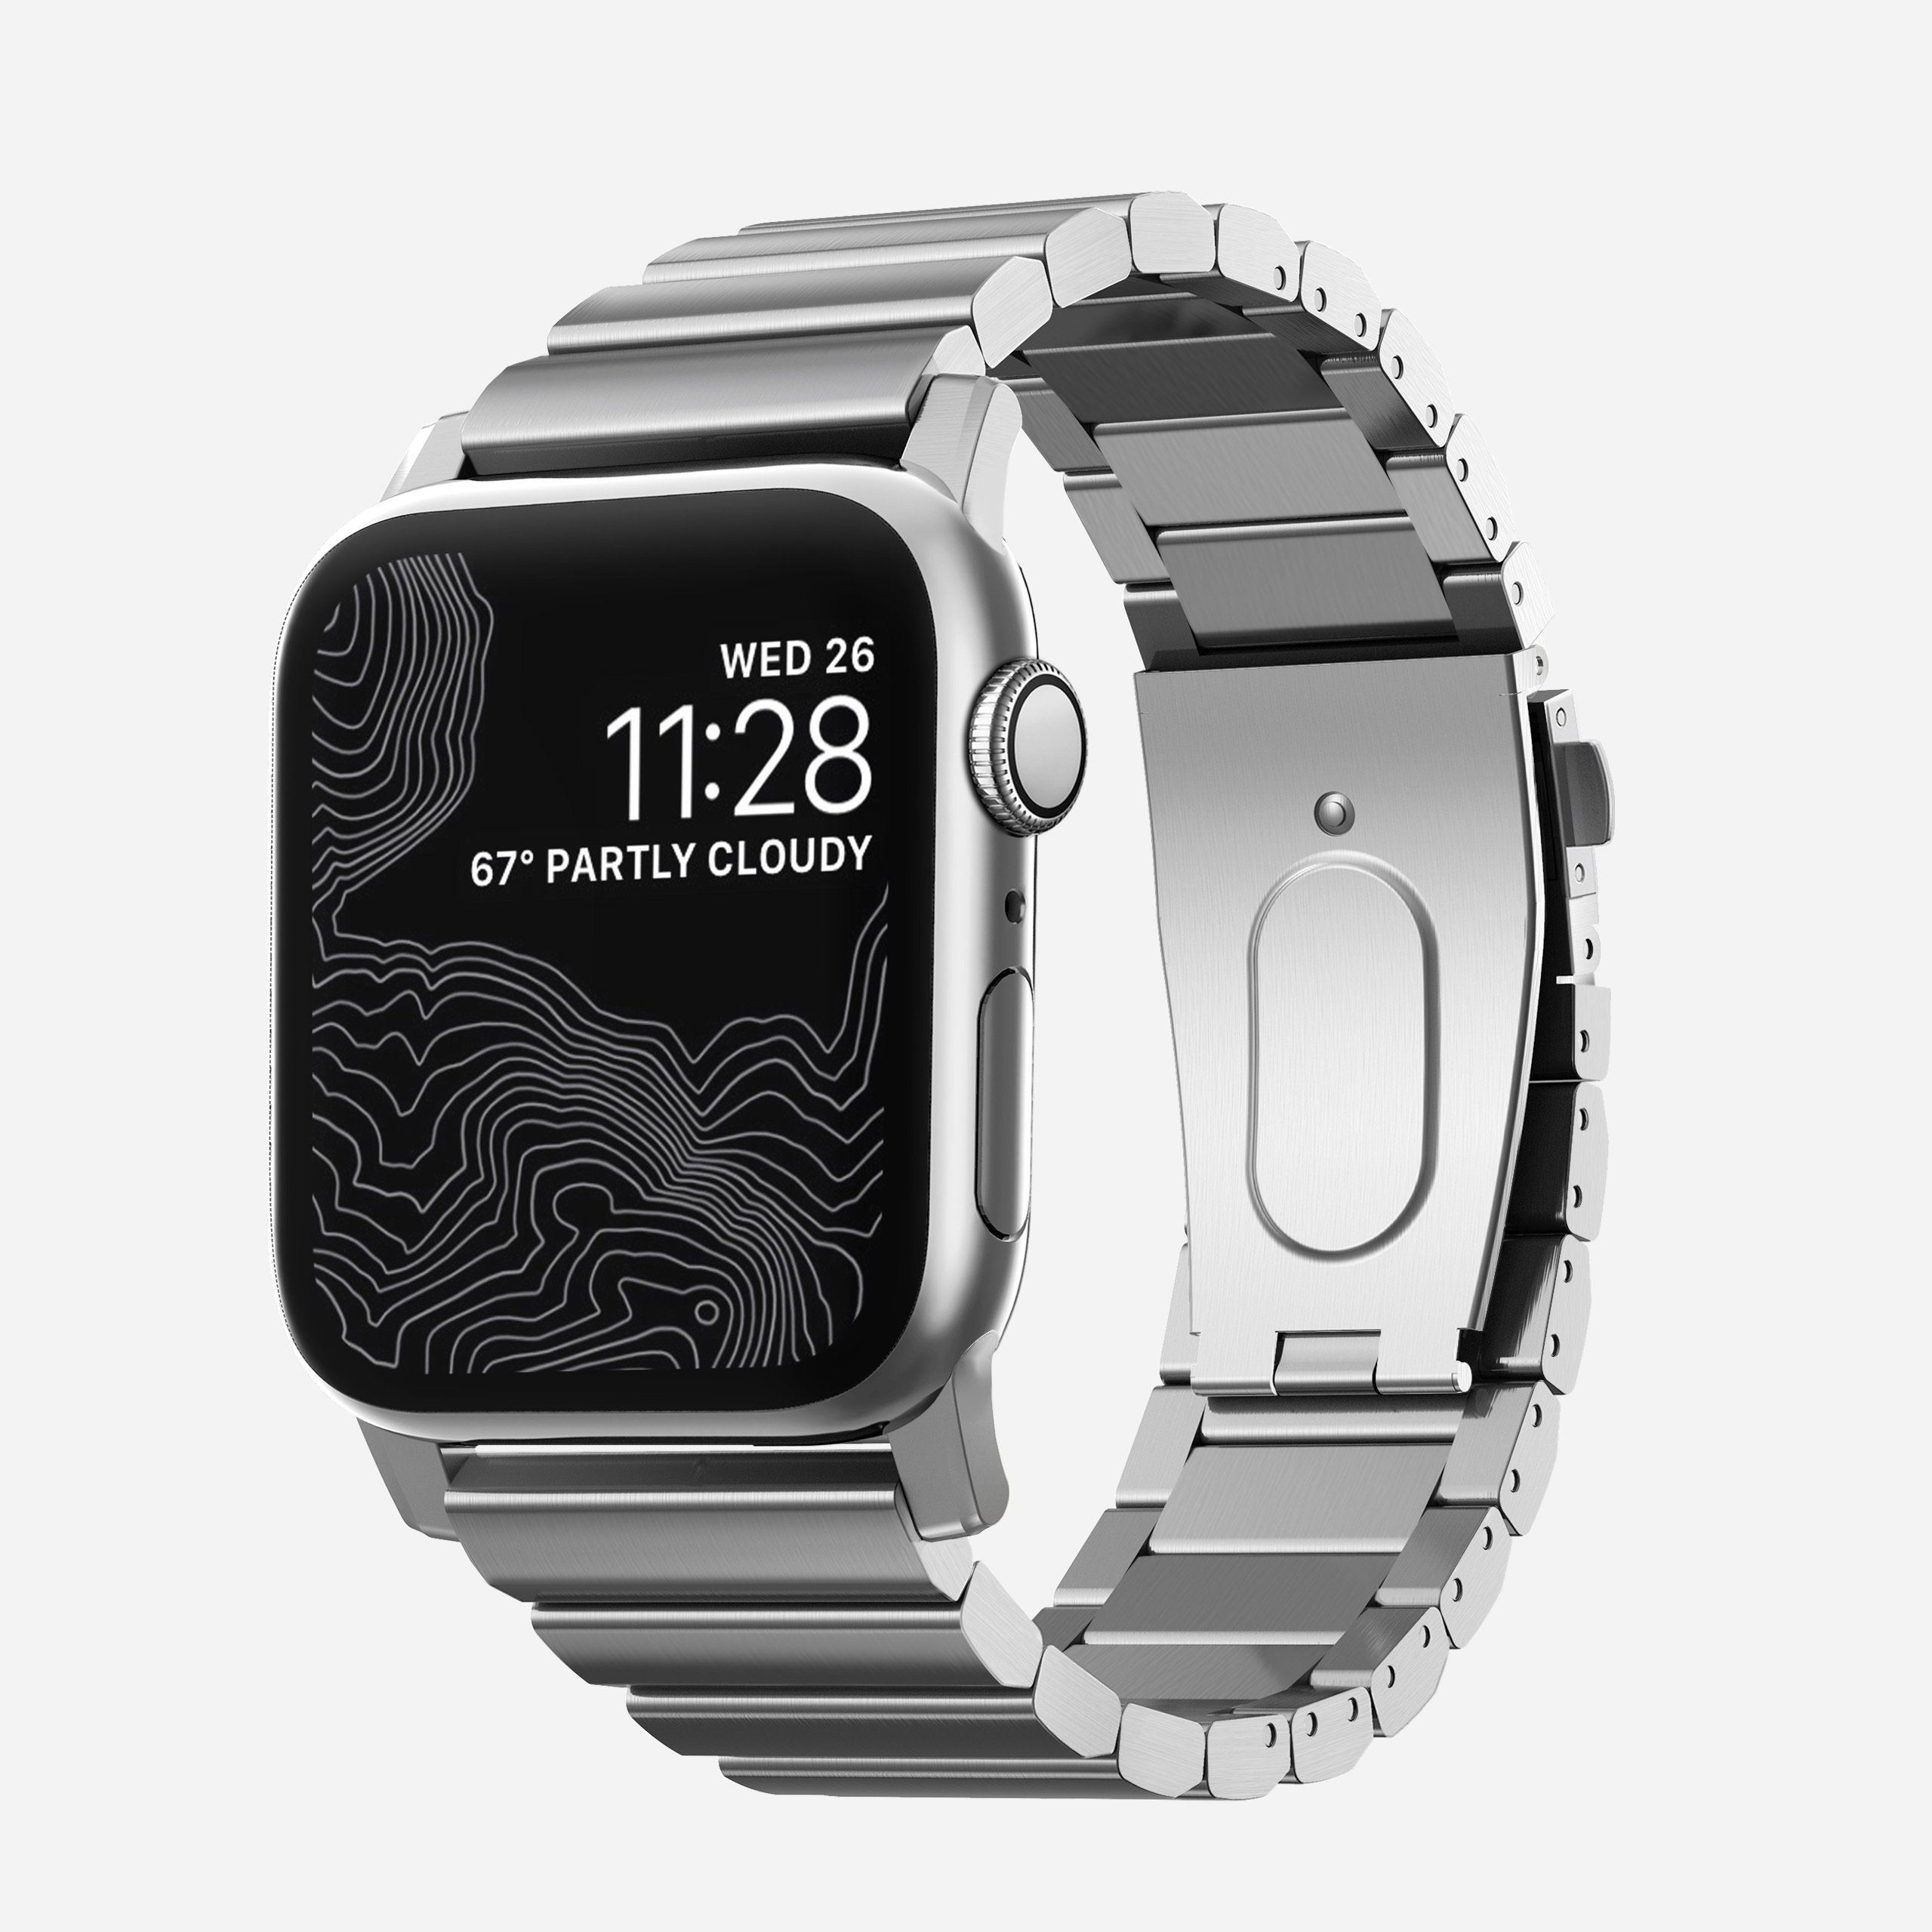 Apple Watch Stainless Steel Band, Silver Hardware